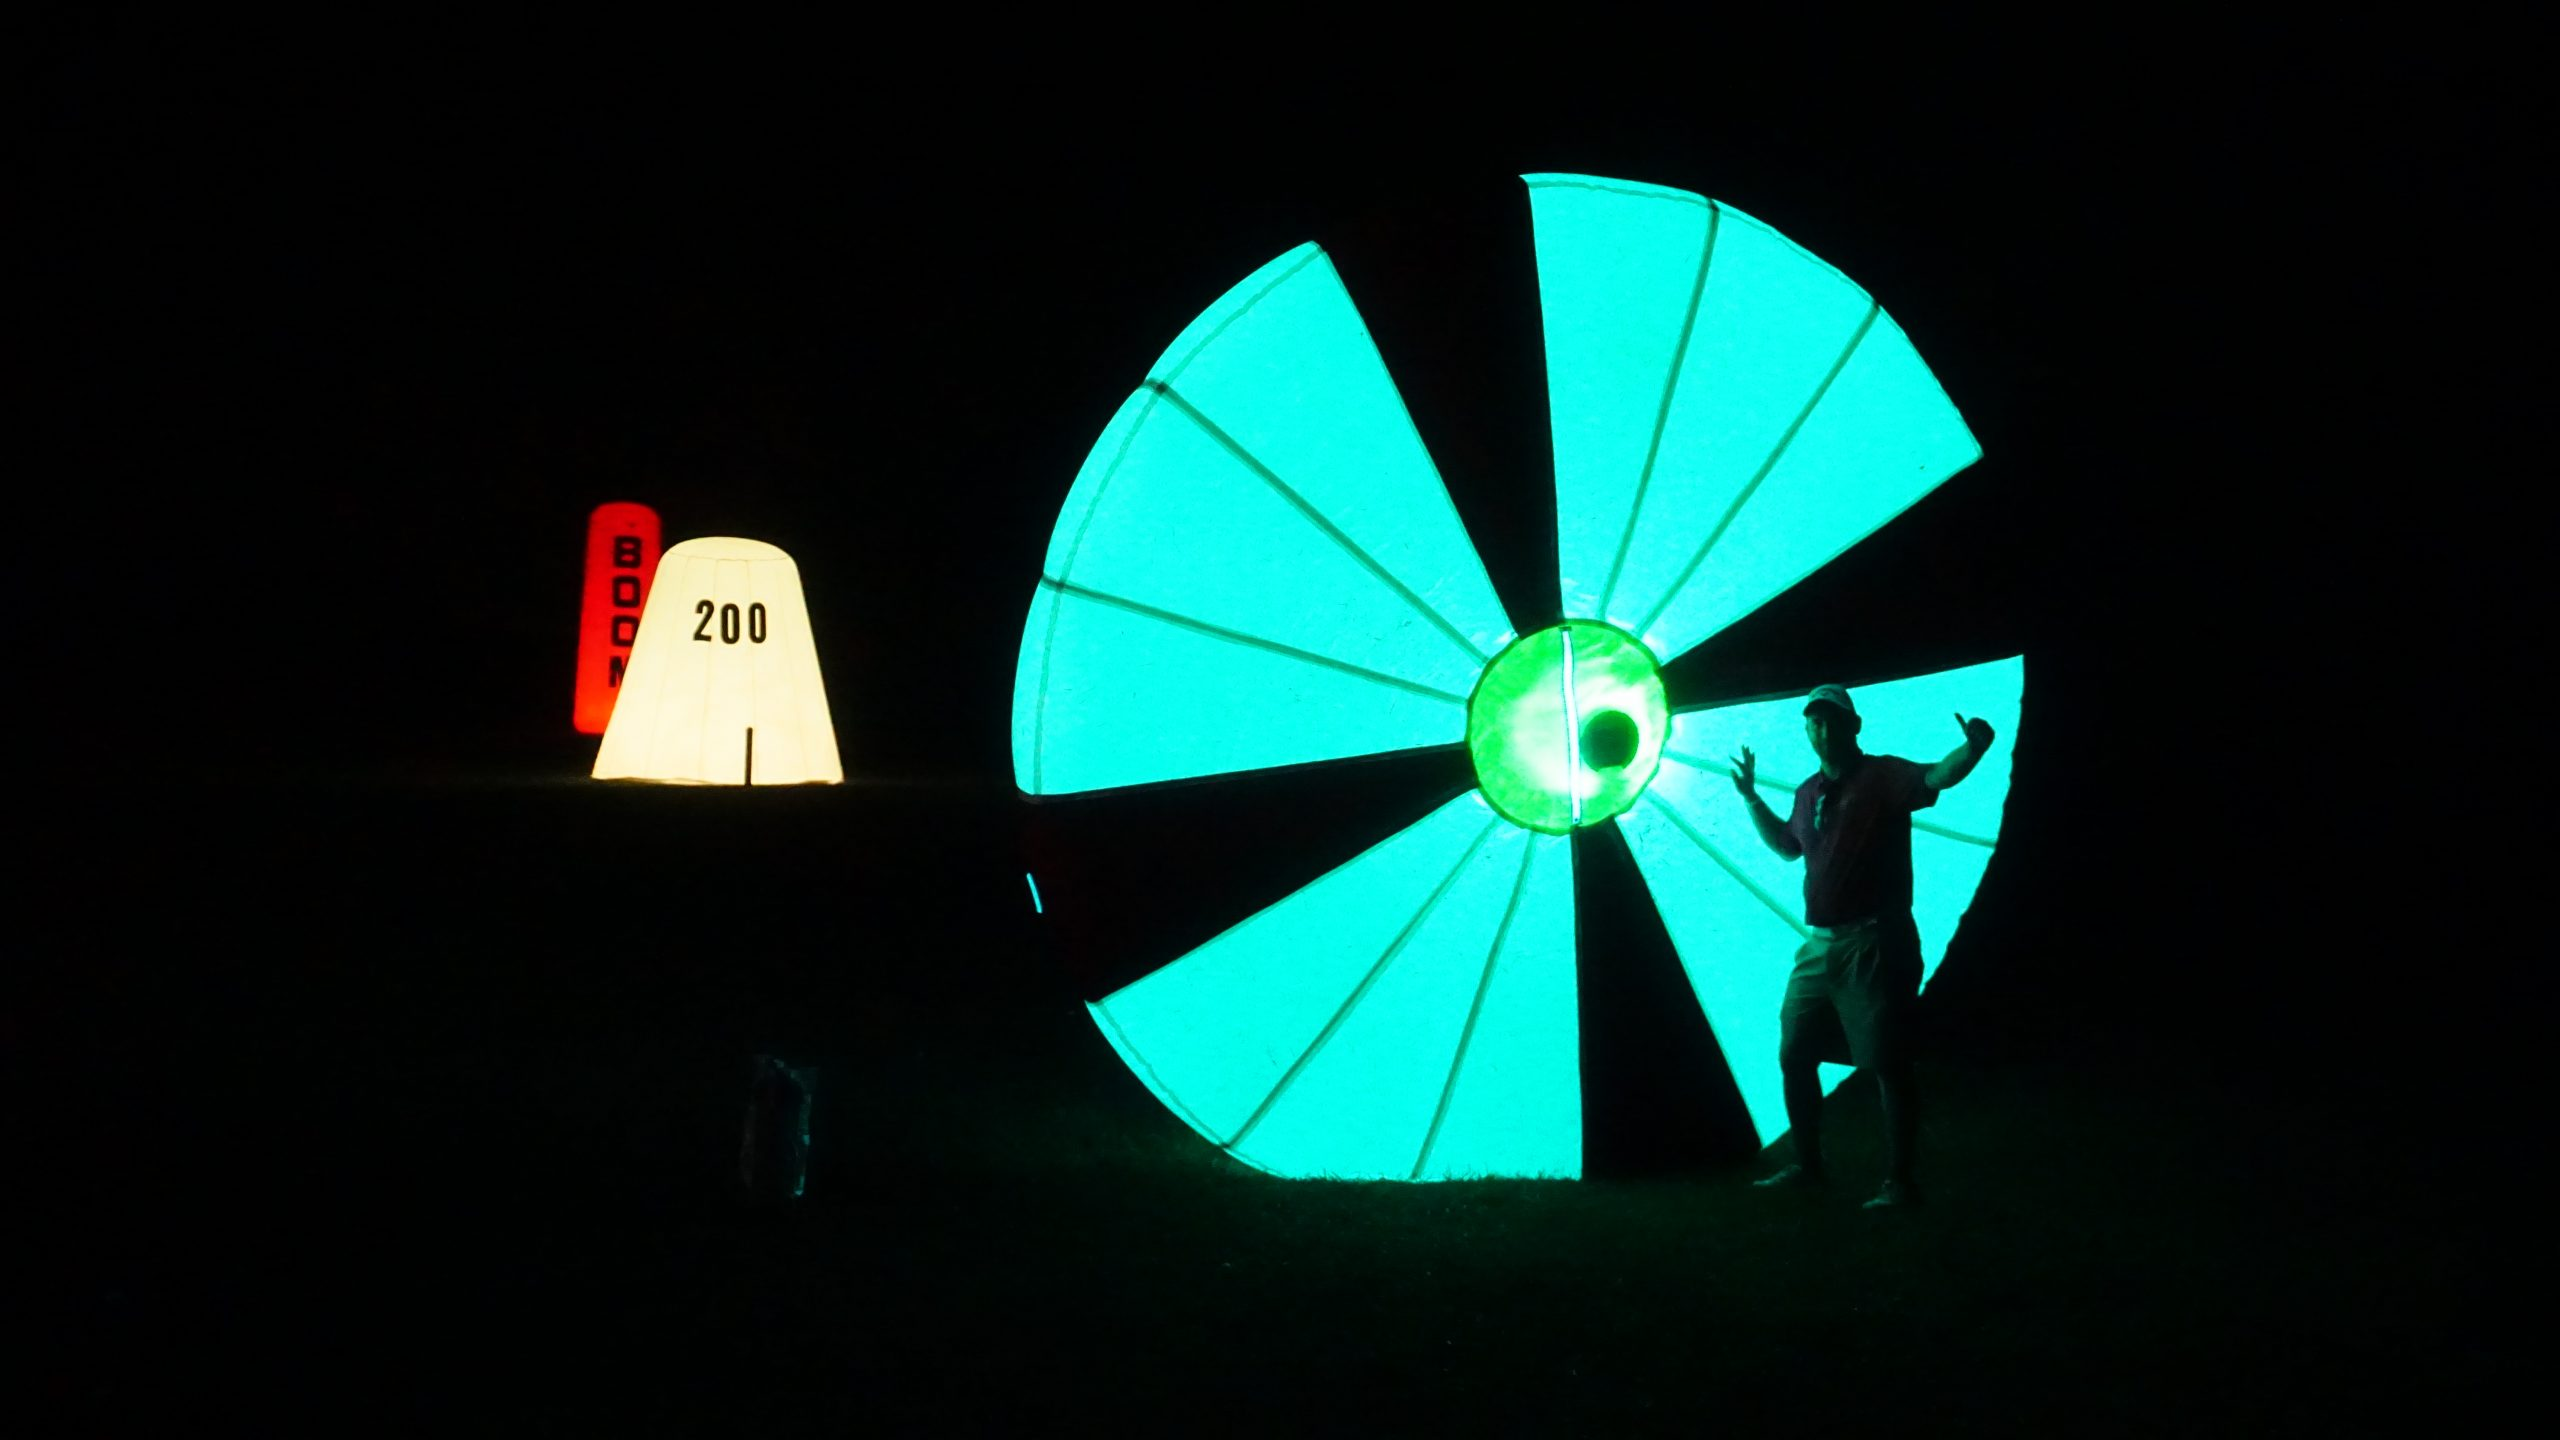 Inflatable flop shot wall at night